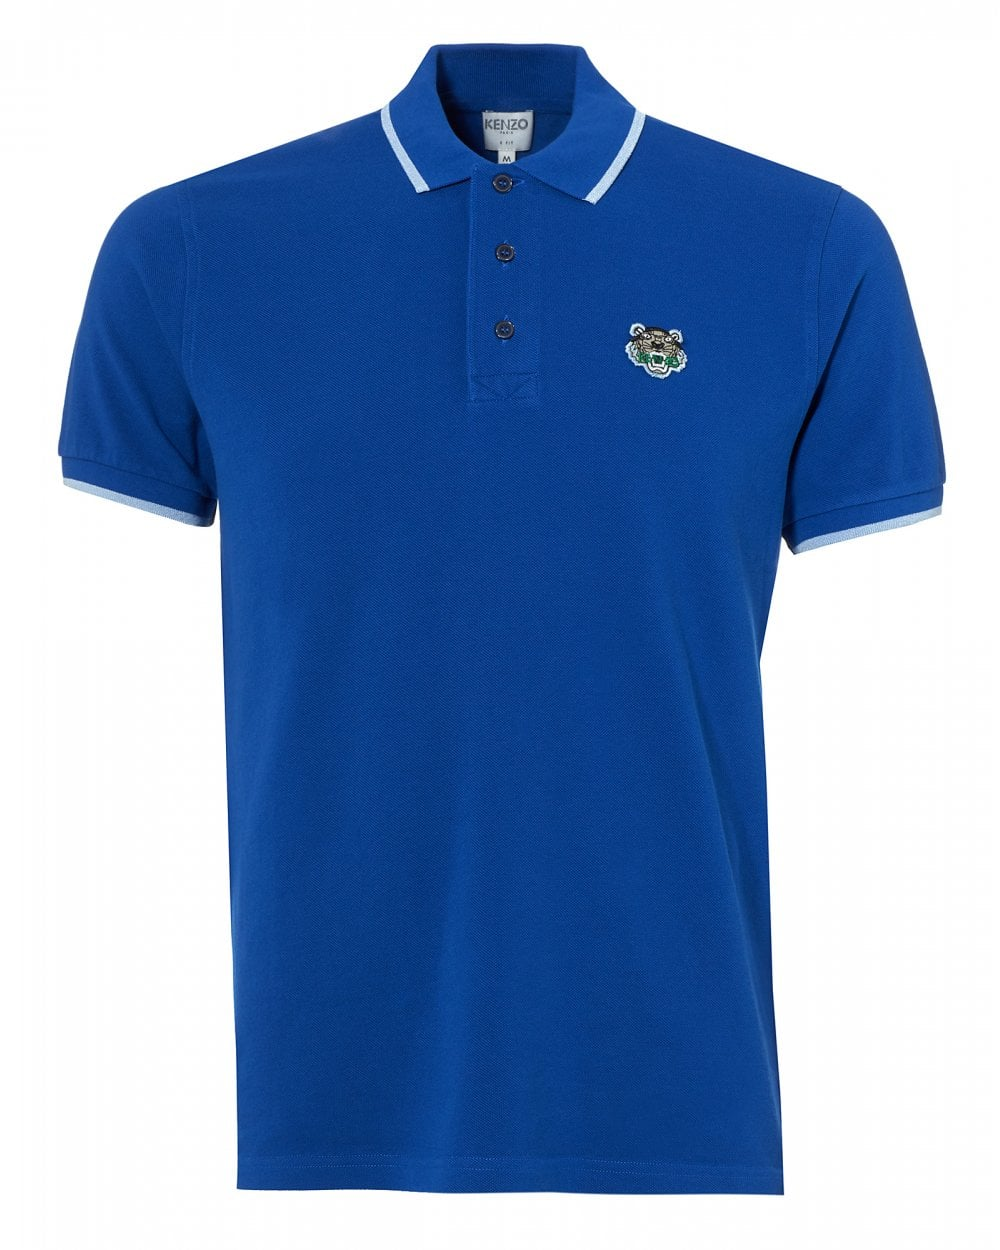 dbe91185 Kenzo Mens Tiger Polo Shirt, Tipped Regular Fit French Blue Polo